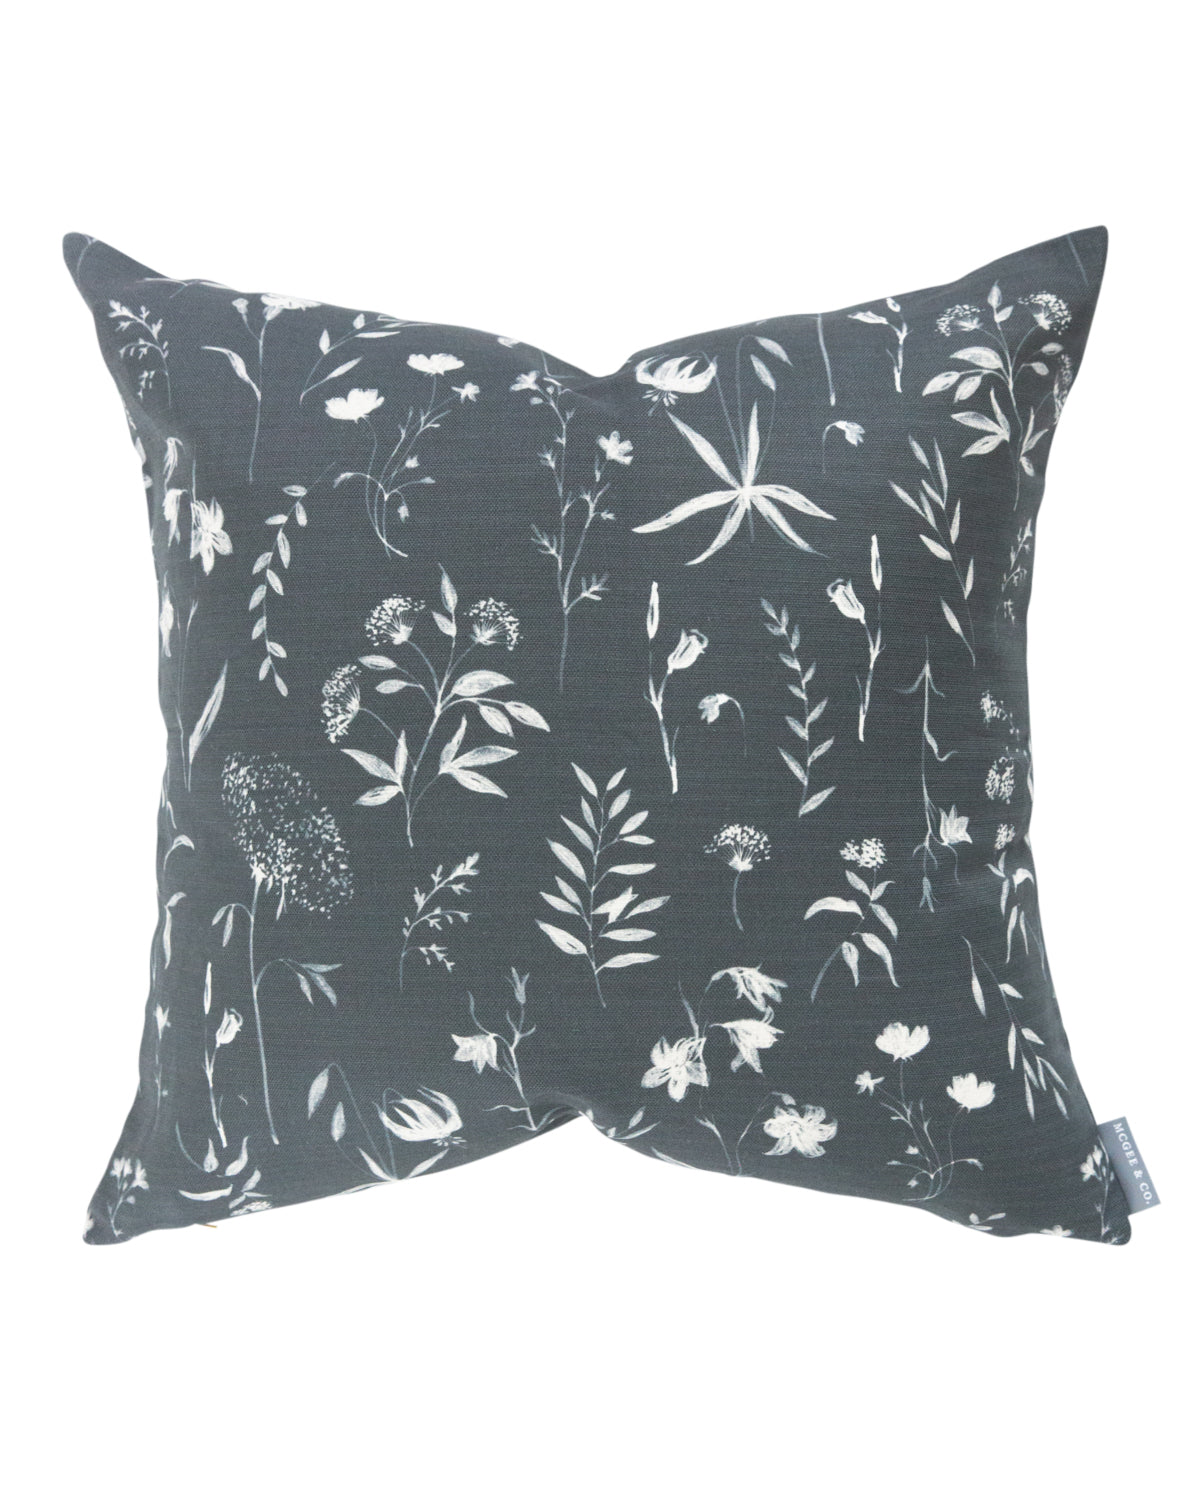 Juno Floral Pillow Cover